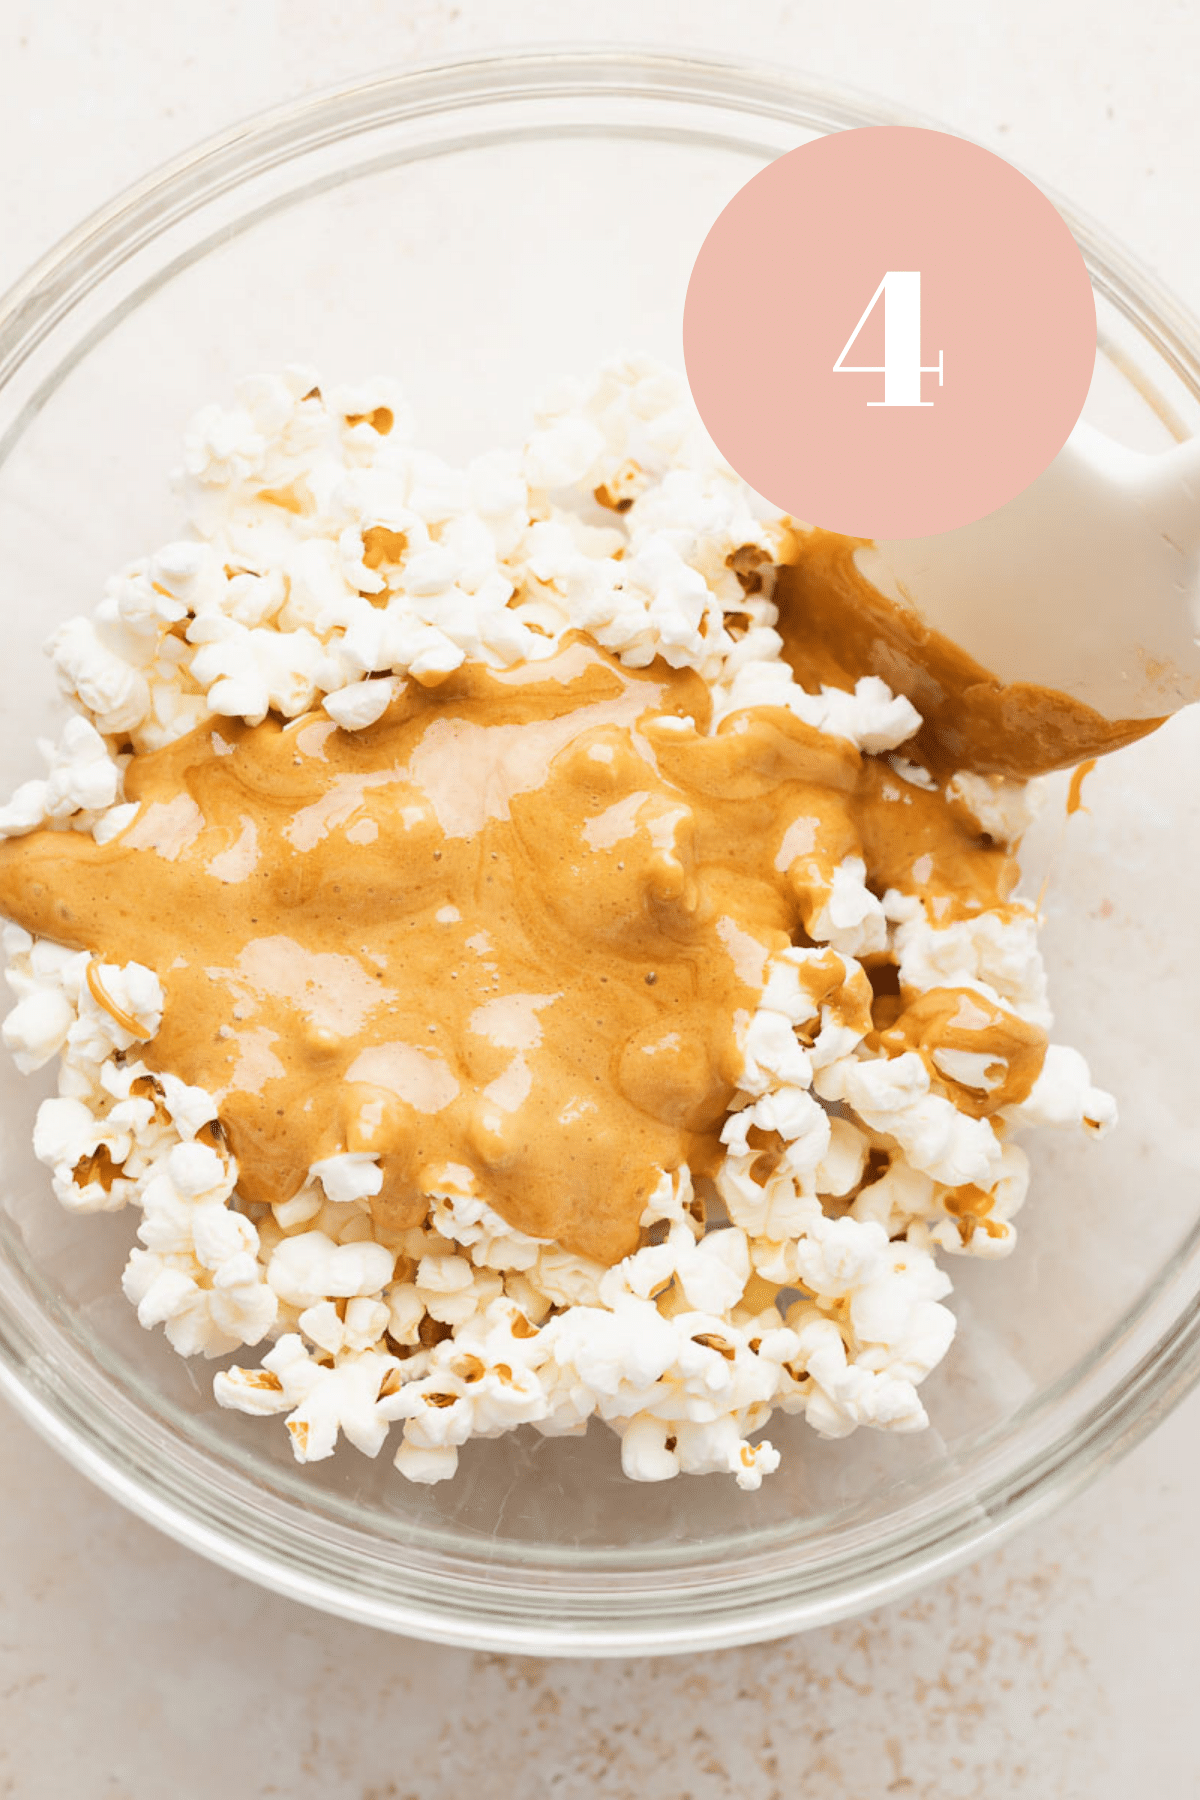 a bowl of the popcorn after the caramel is poured on top of it